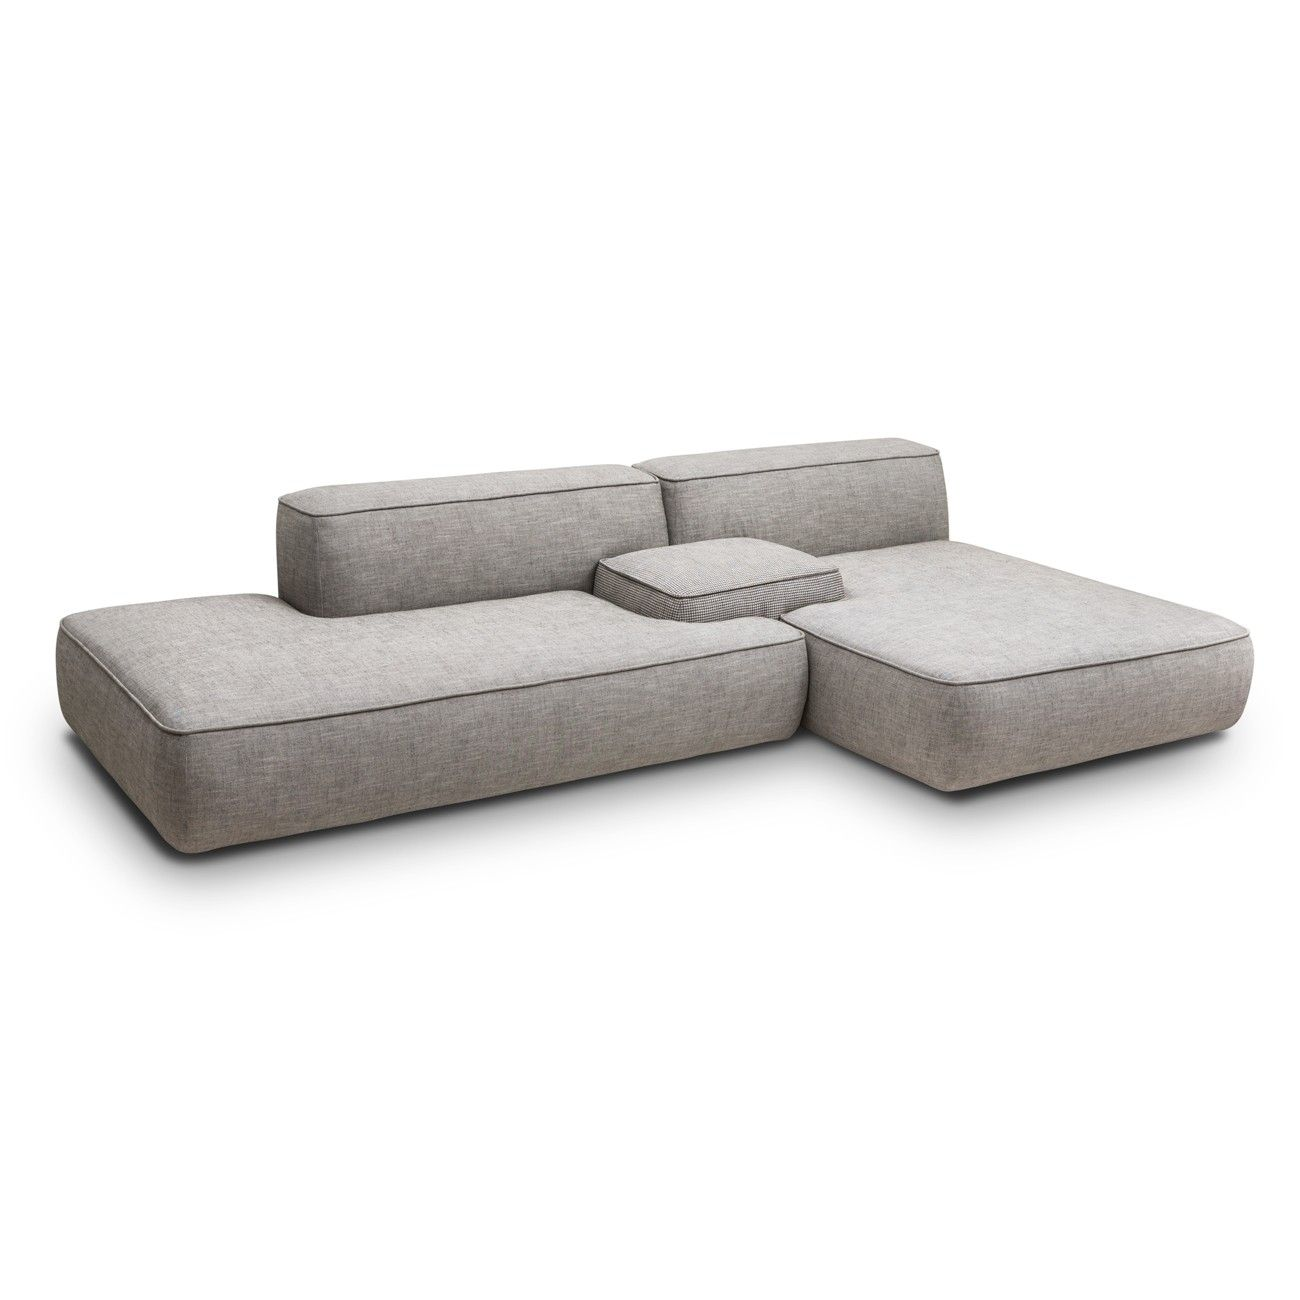 Divani Letto Divani E Divani.Lema Cloud Modular Sofa 2980 With Chaise Armrest Rogerseller